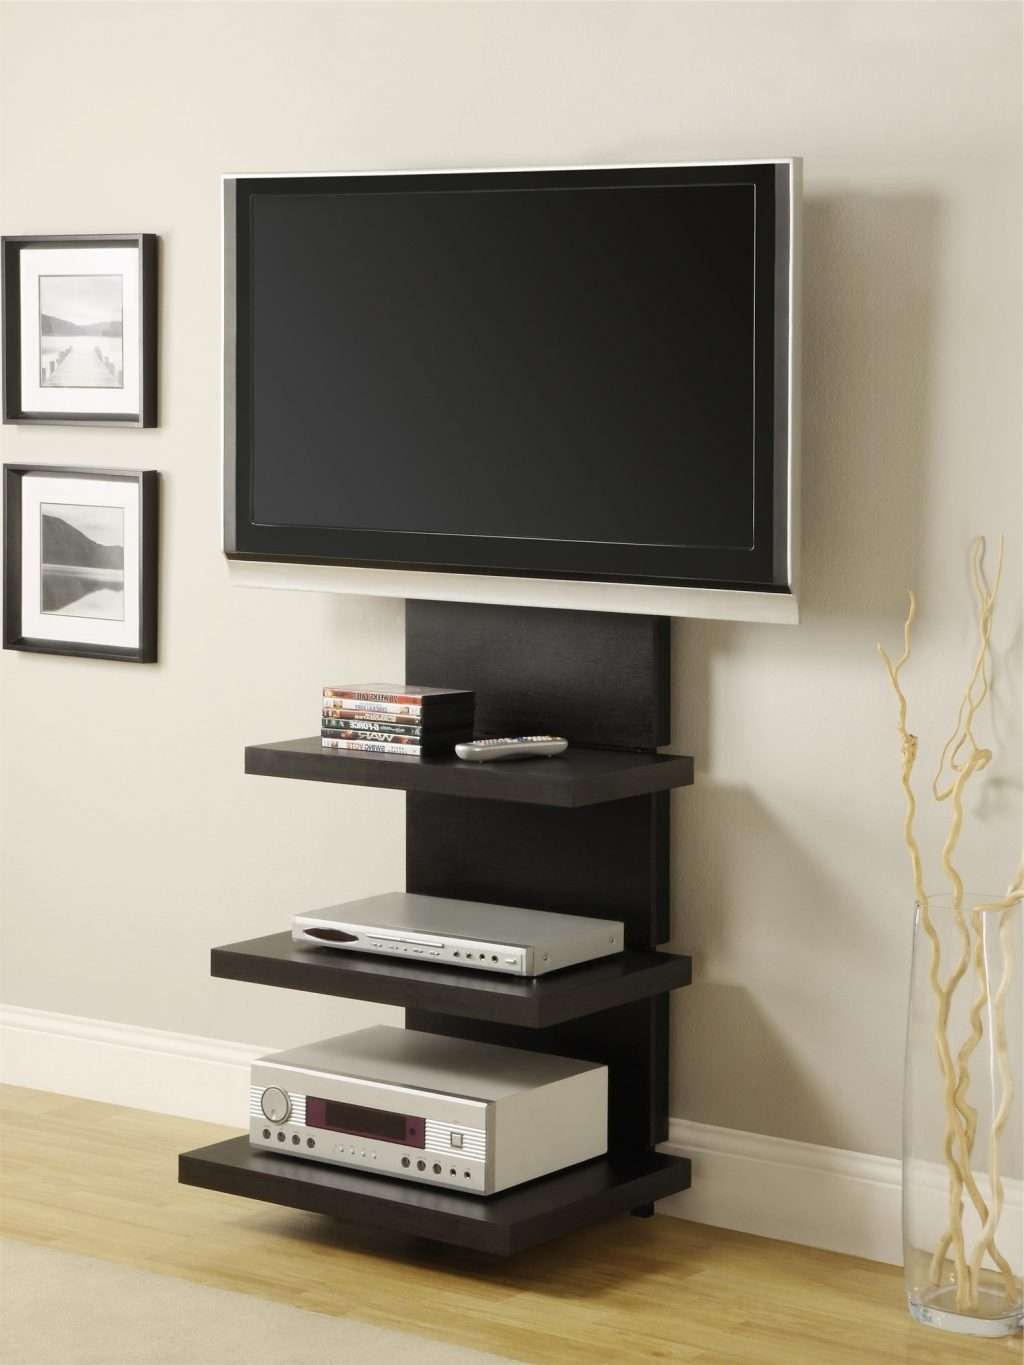 Living ~ Remarkable Space Saving Tv Stand Tv Room Ideas For Small In Tv Stands For Small Rooms (View 9 of 15)